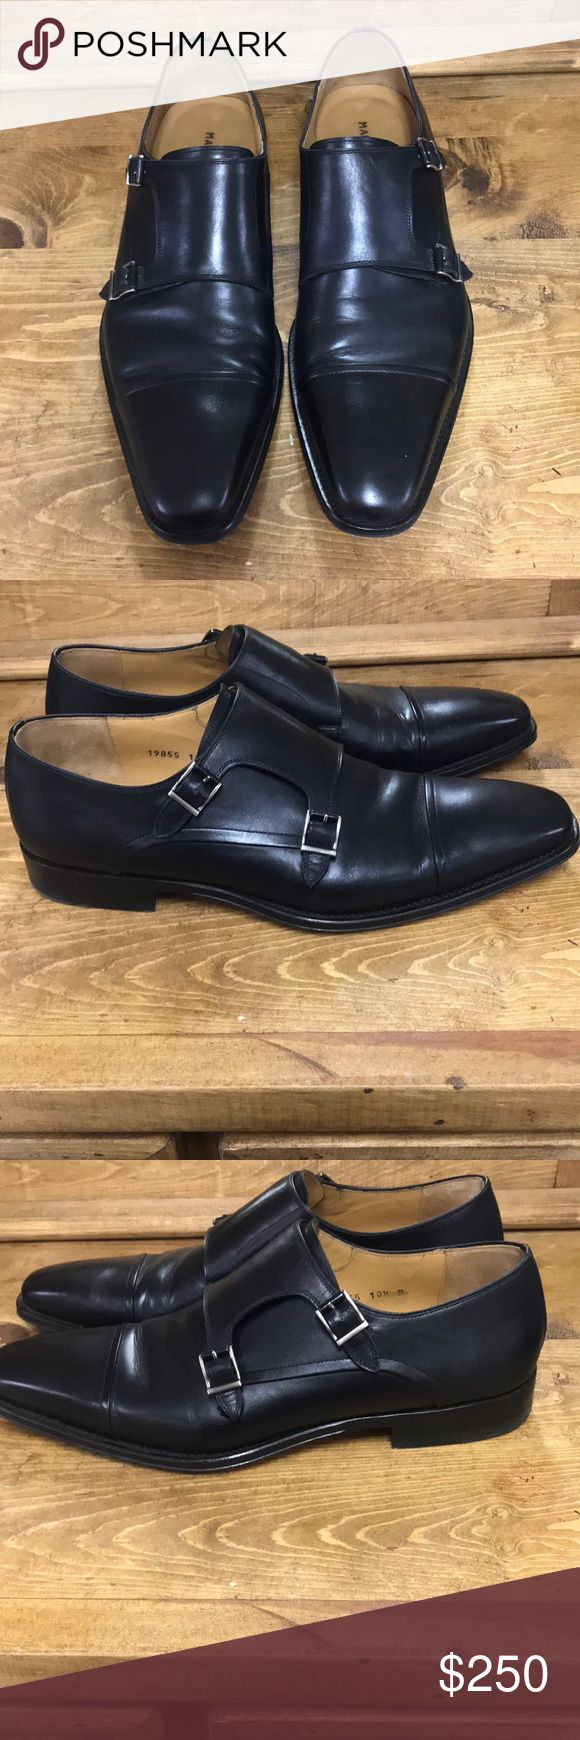 Men's Black Magnanni Double Monk Dress Shoe Bought from Dillards 3 weeks ago, ...